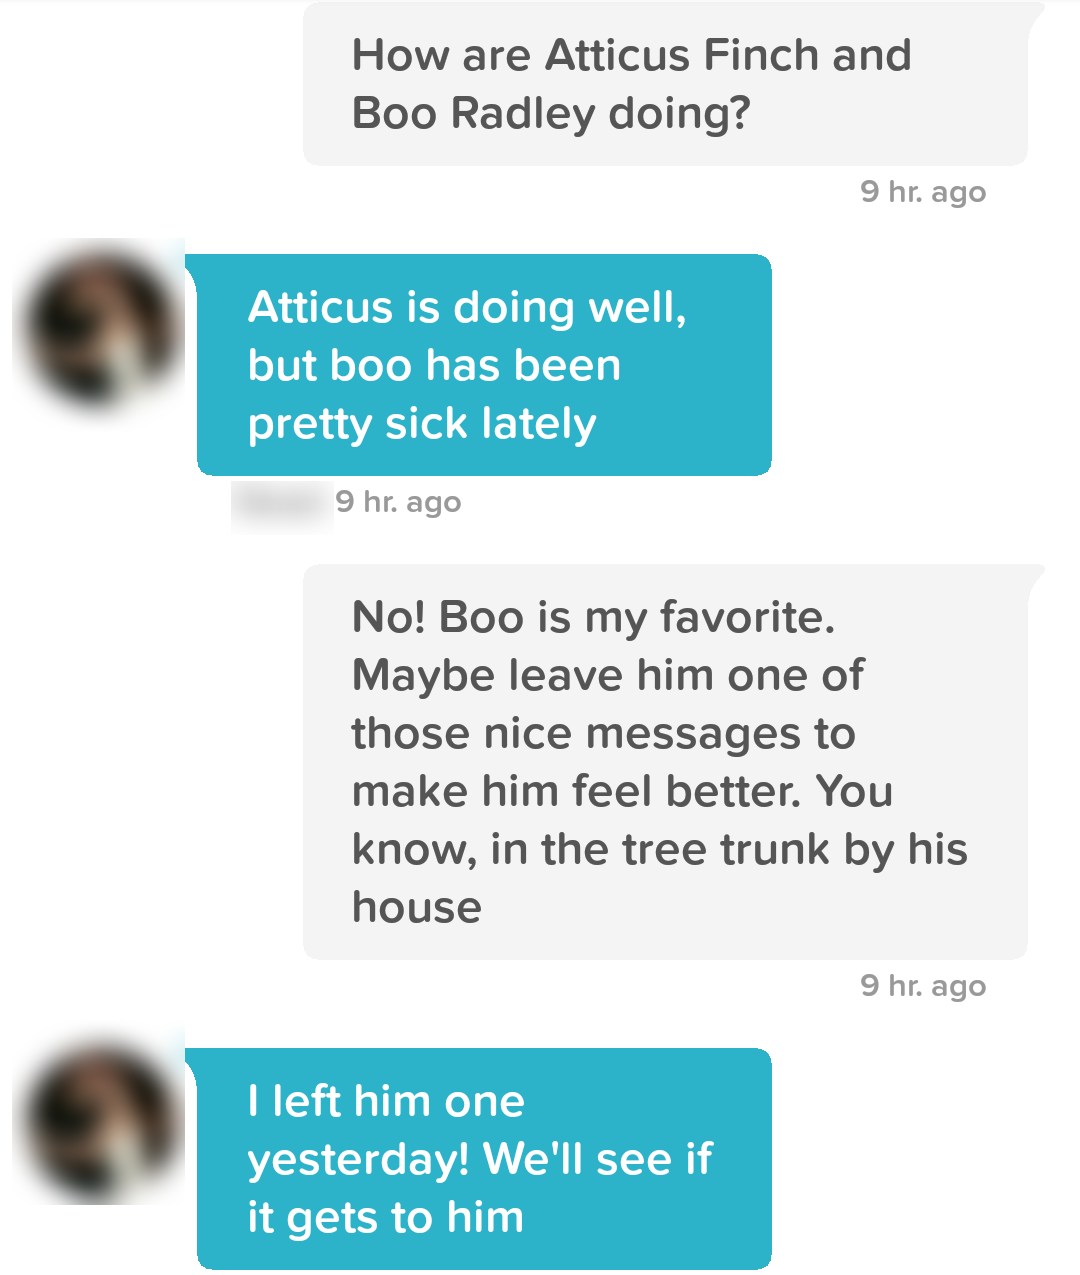 Interracial dating difficulties synonyms